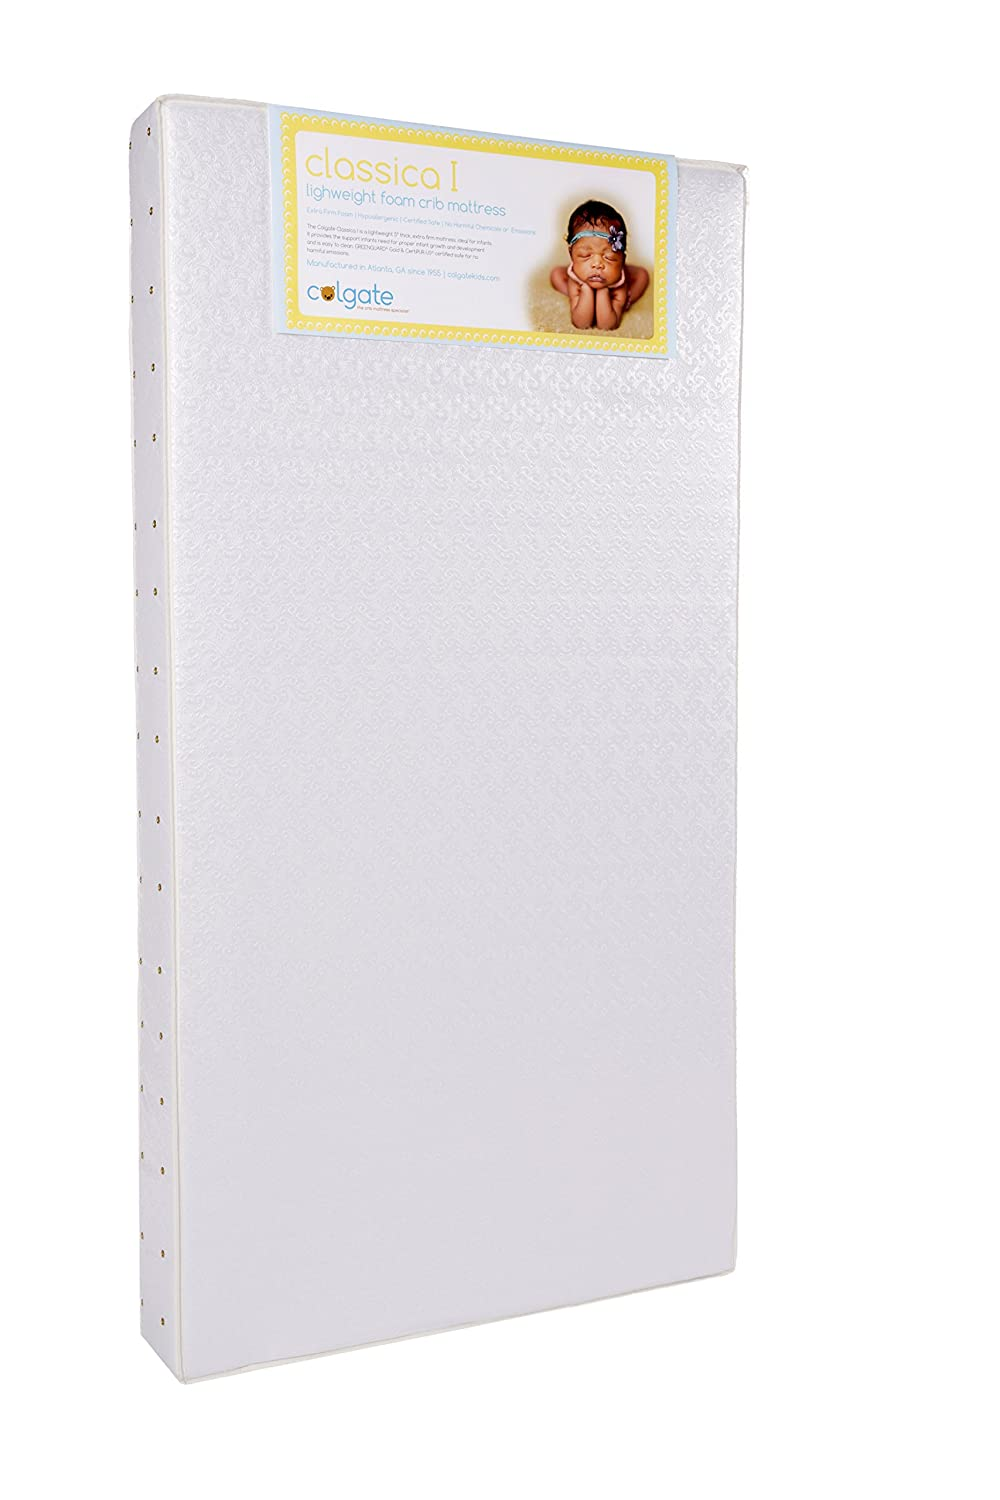 Colgate Classica I Crib Mattress | 51.6